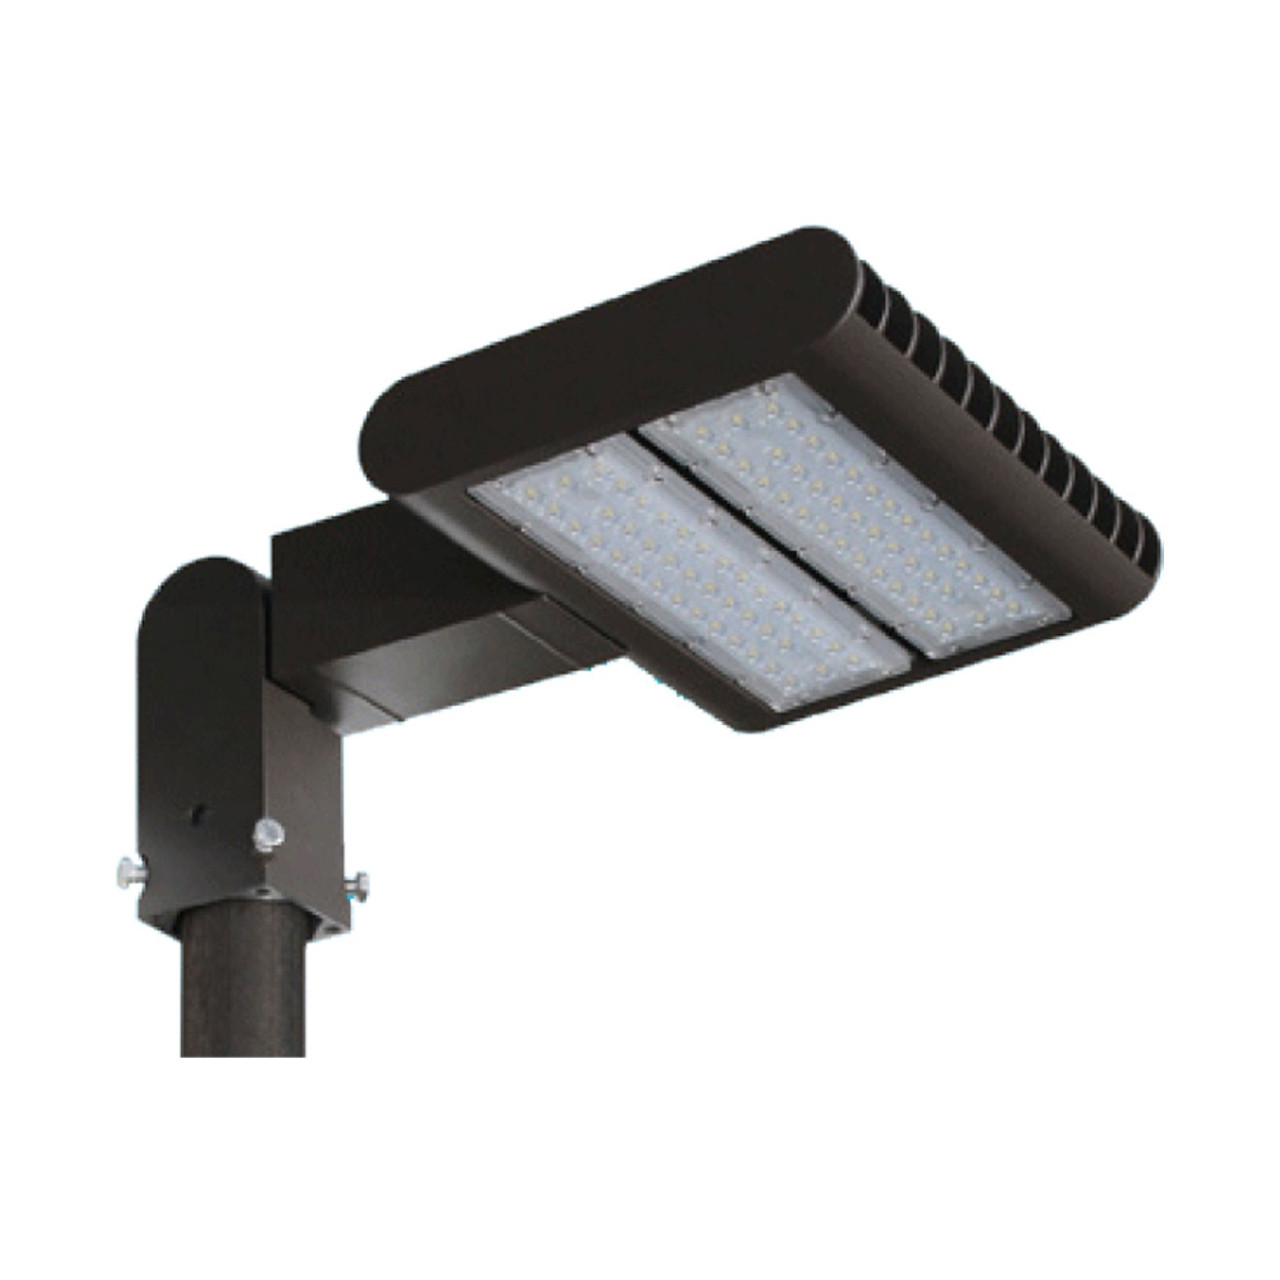 100 watt outdoor led floodlight slipfitter mount - Led light bulbs for exterior use ...